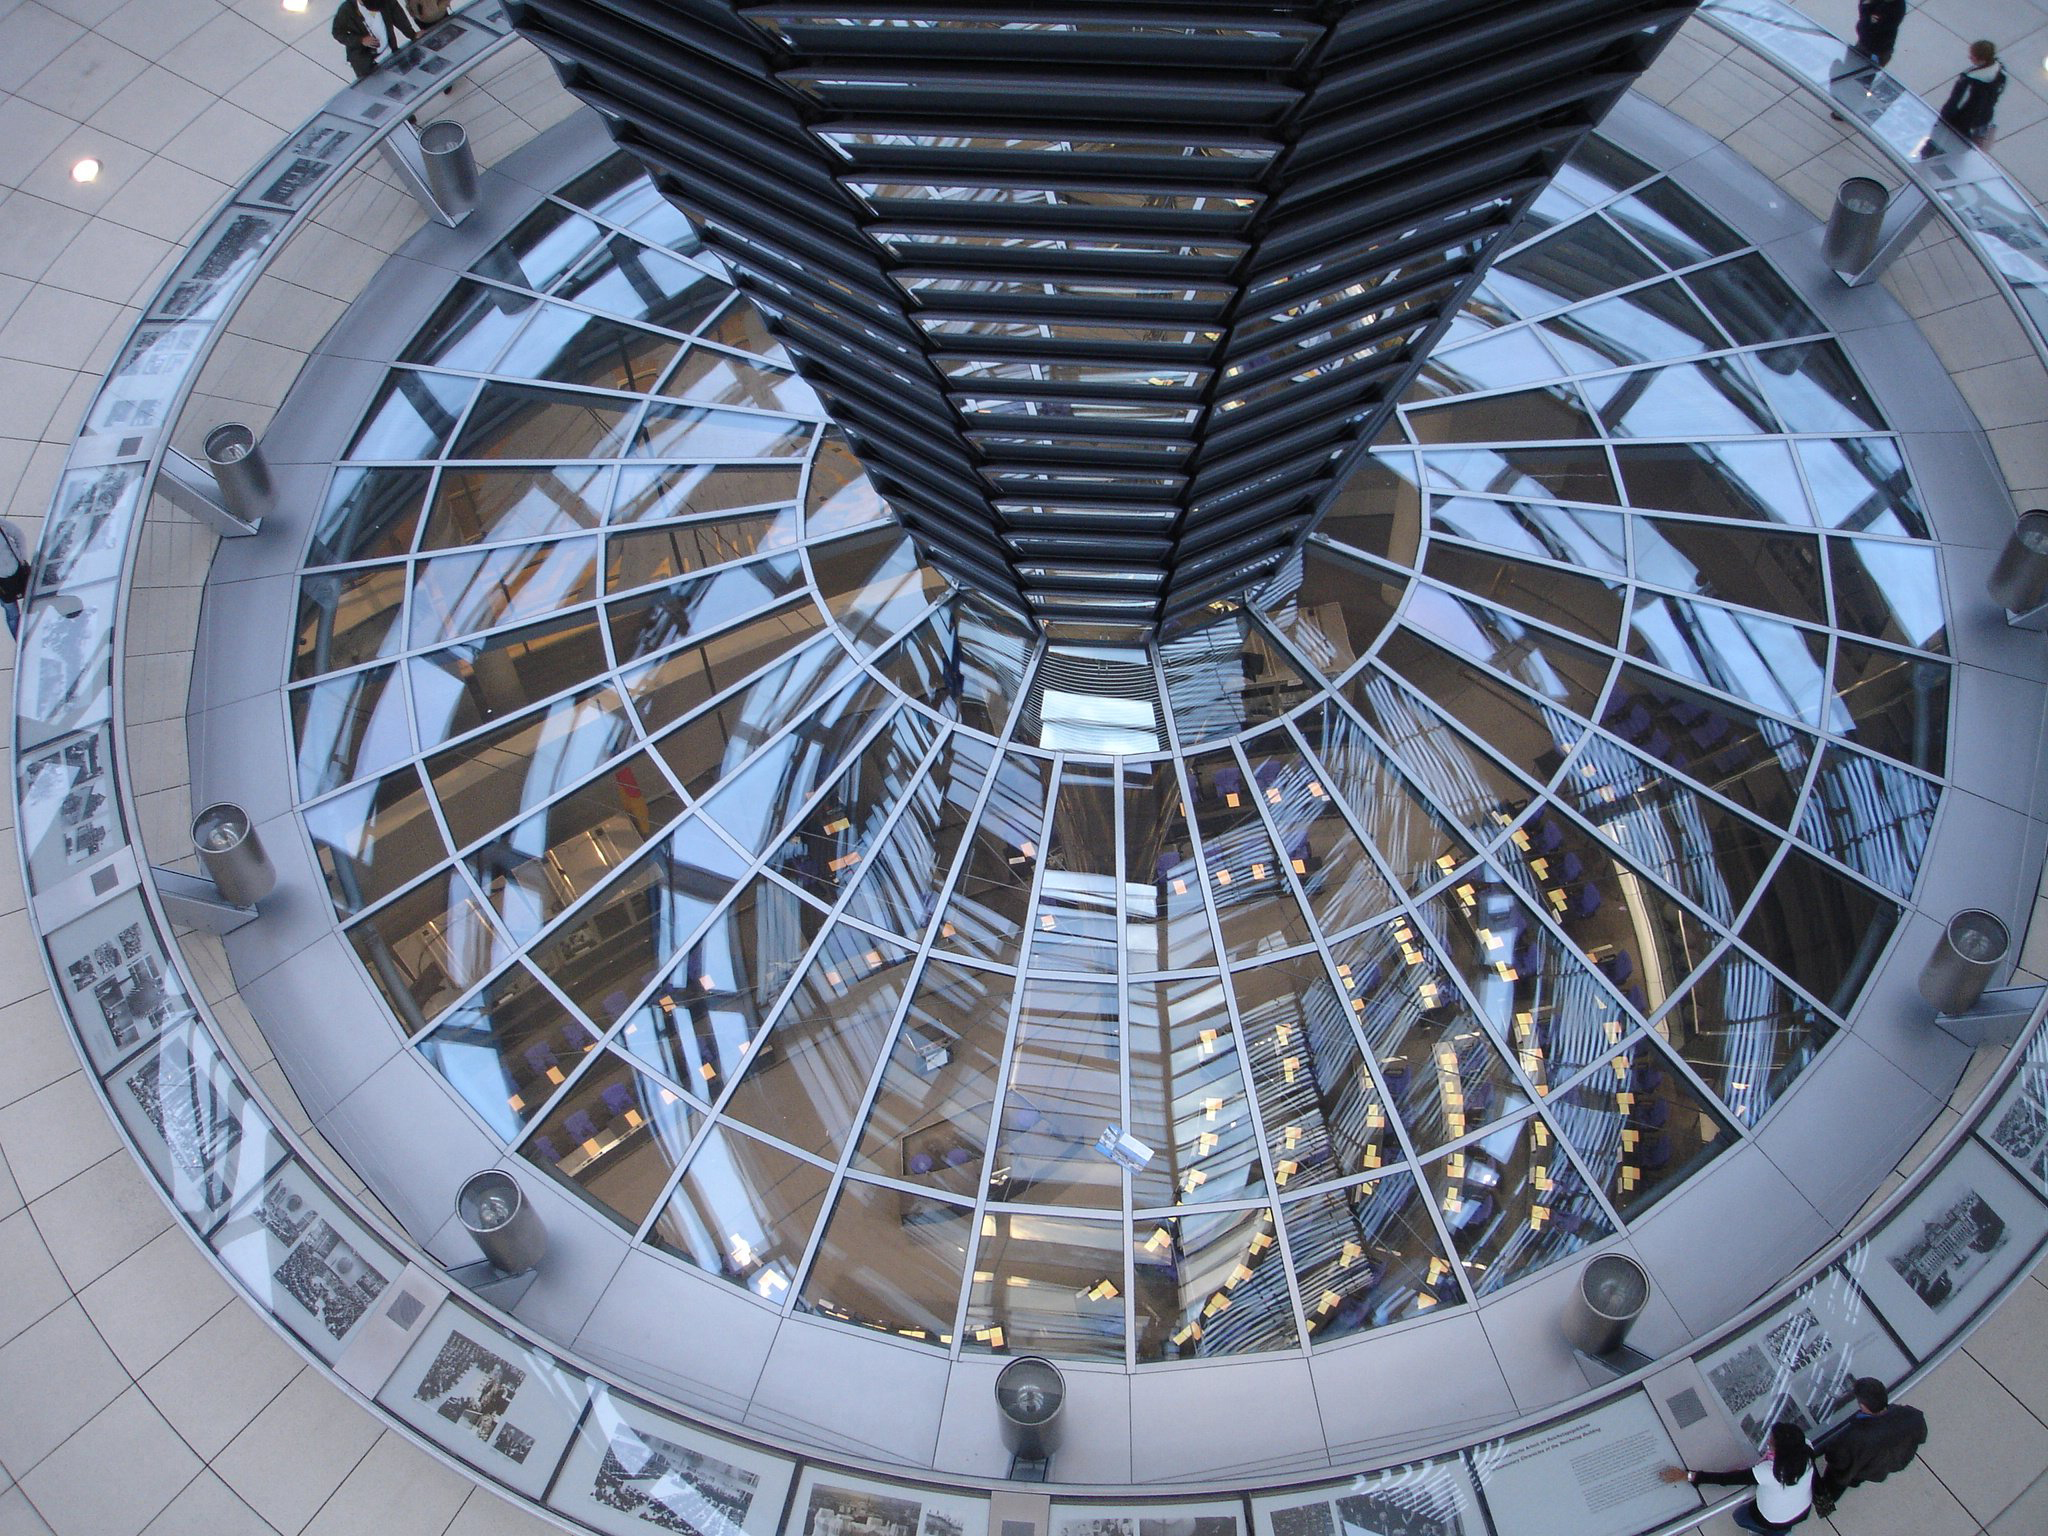 Reichstag, dome, glass, window